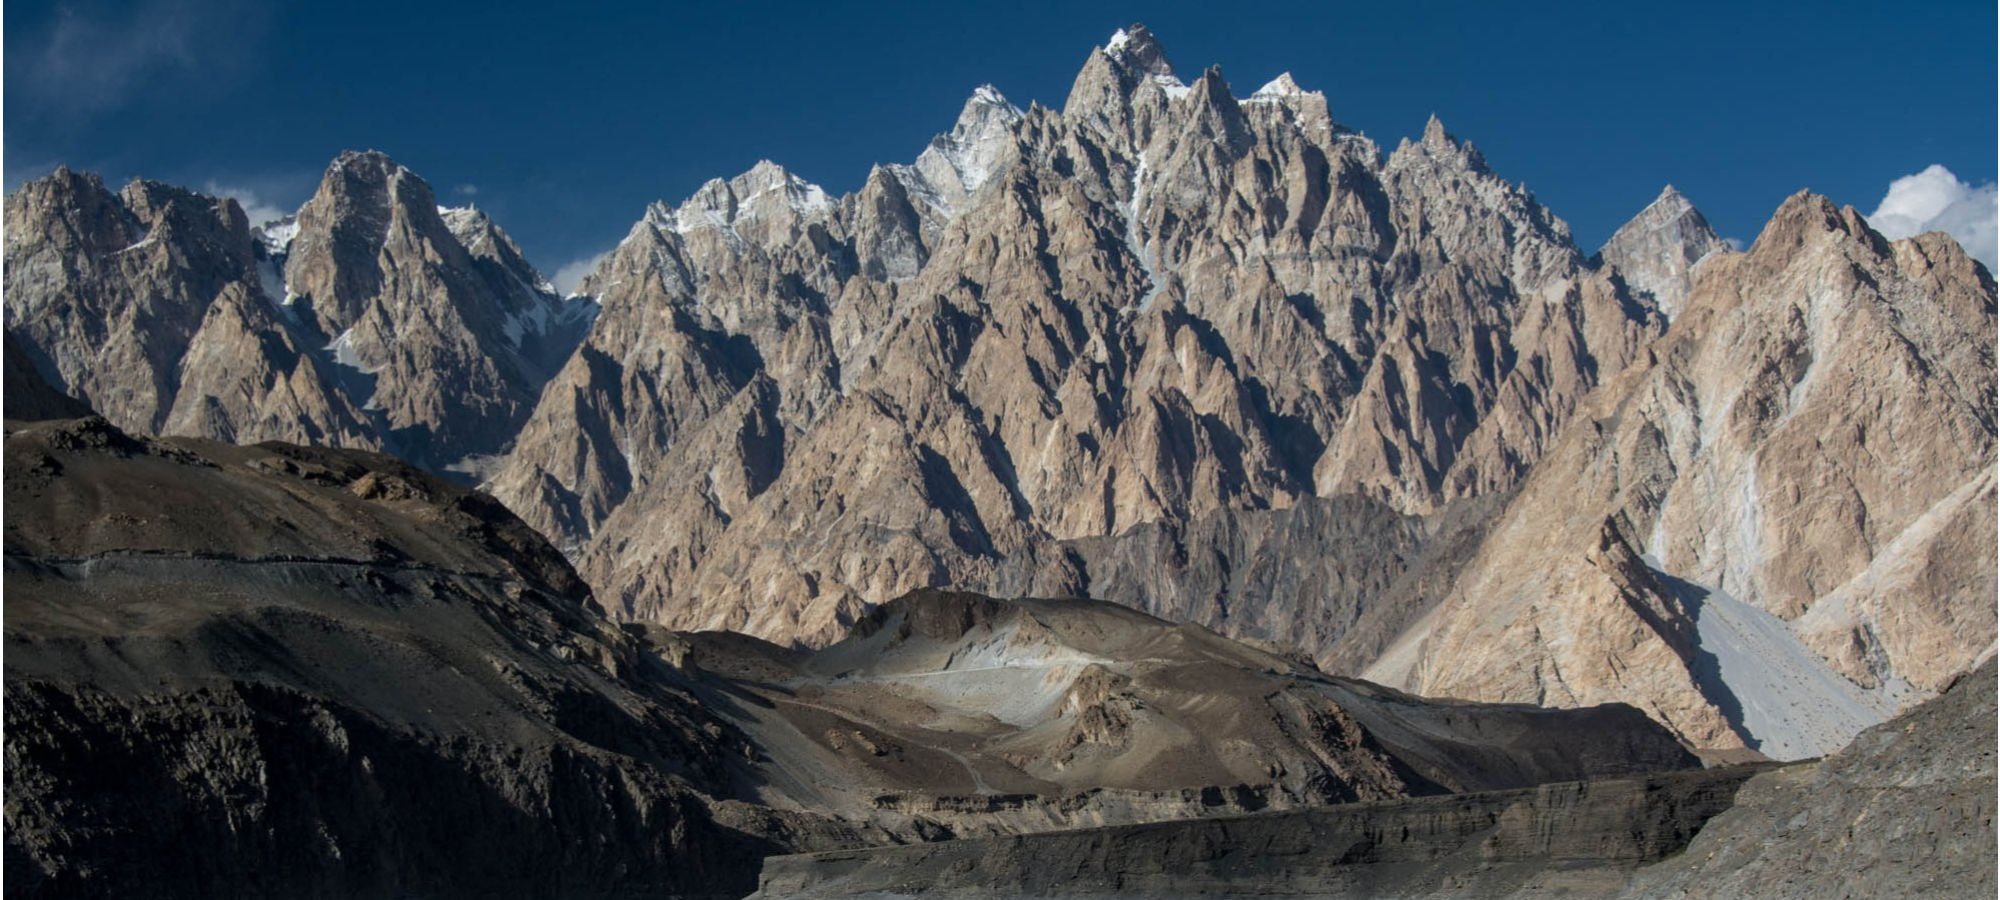 Passu cathedral mountains, Gilgit-Baltistan